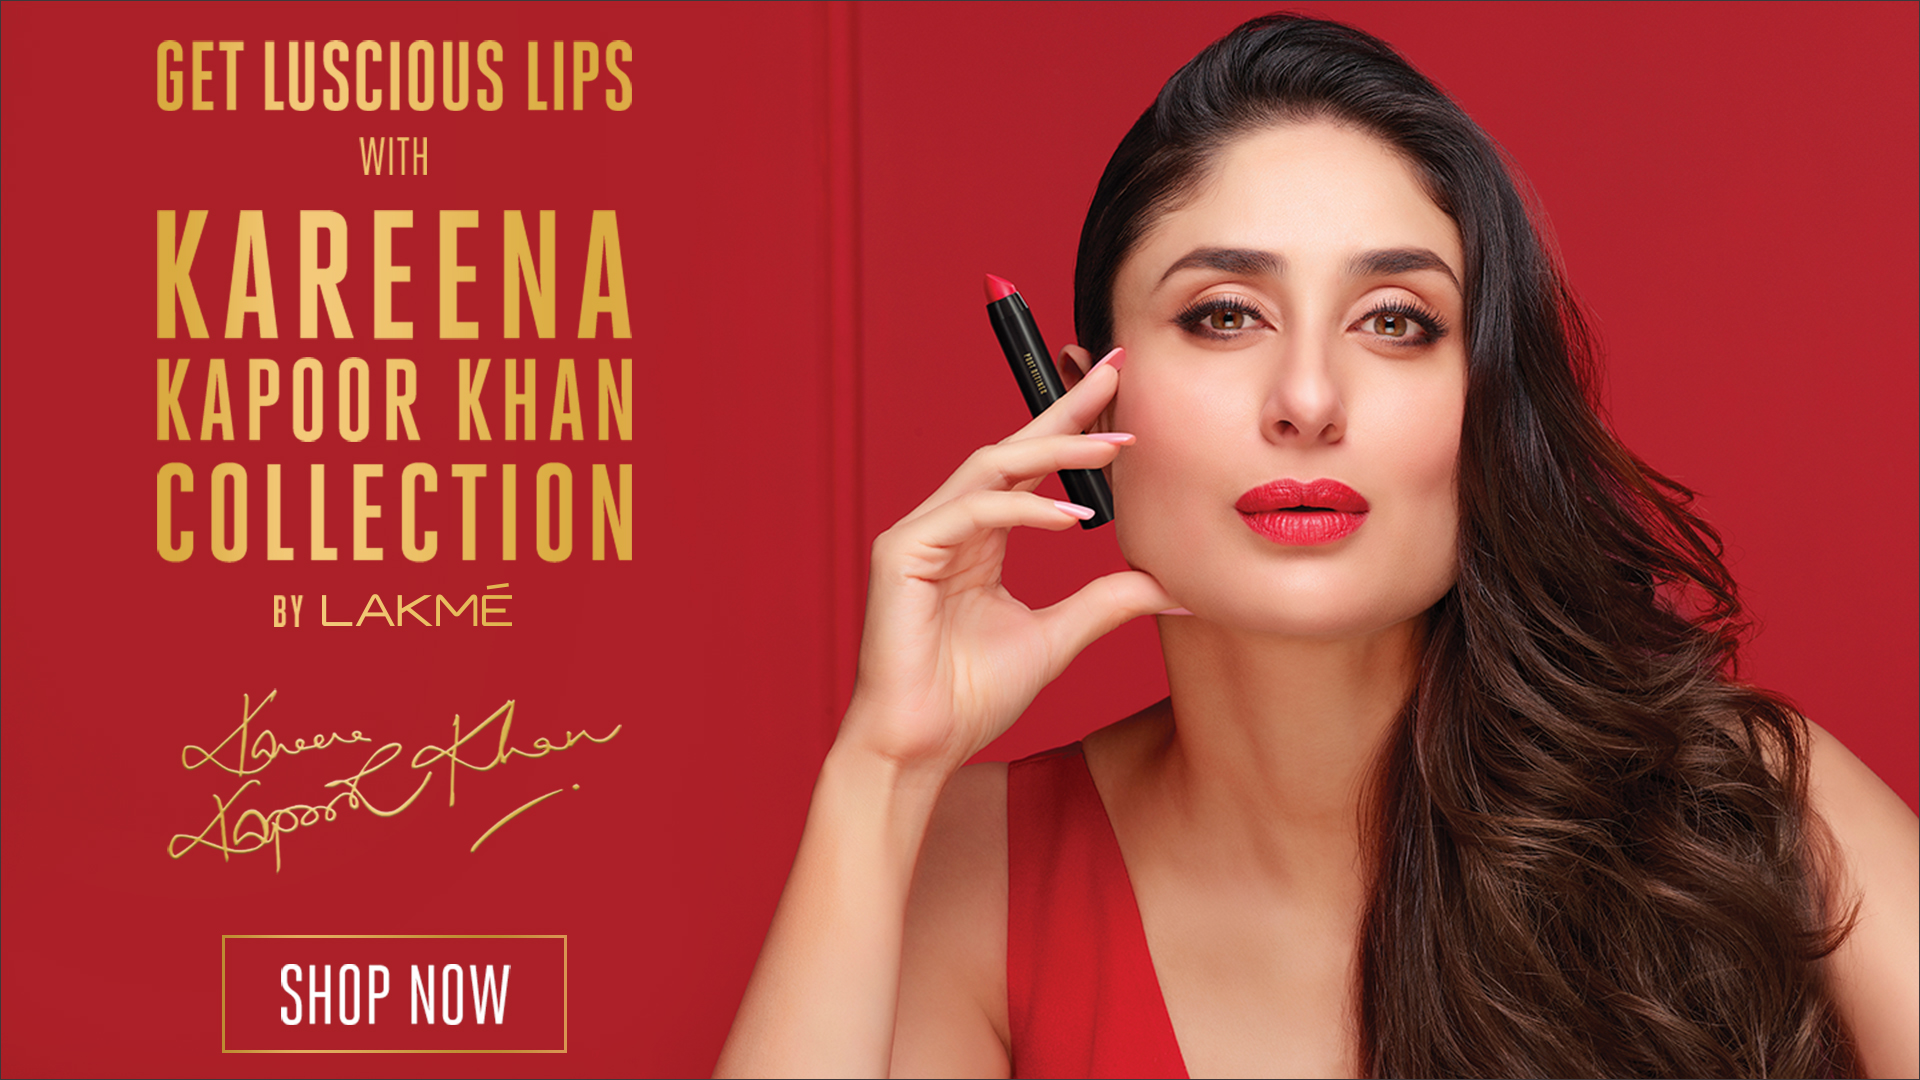 Lakme Desktop 1920x1080 03 1 - Lakme Fashion Week August 2018 - Launch of Kareena Kapoor's First signature line!